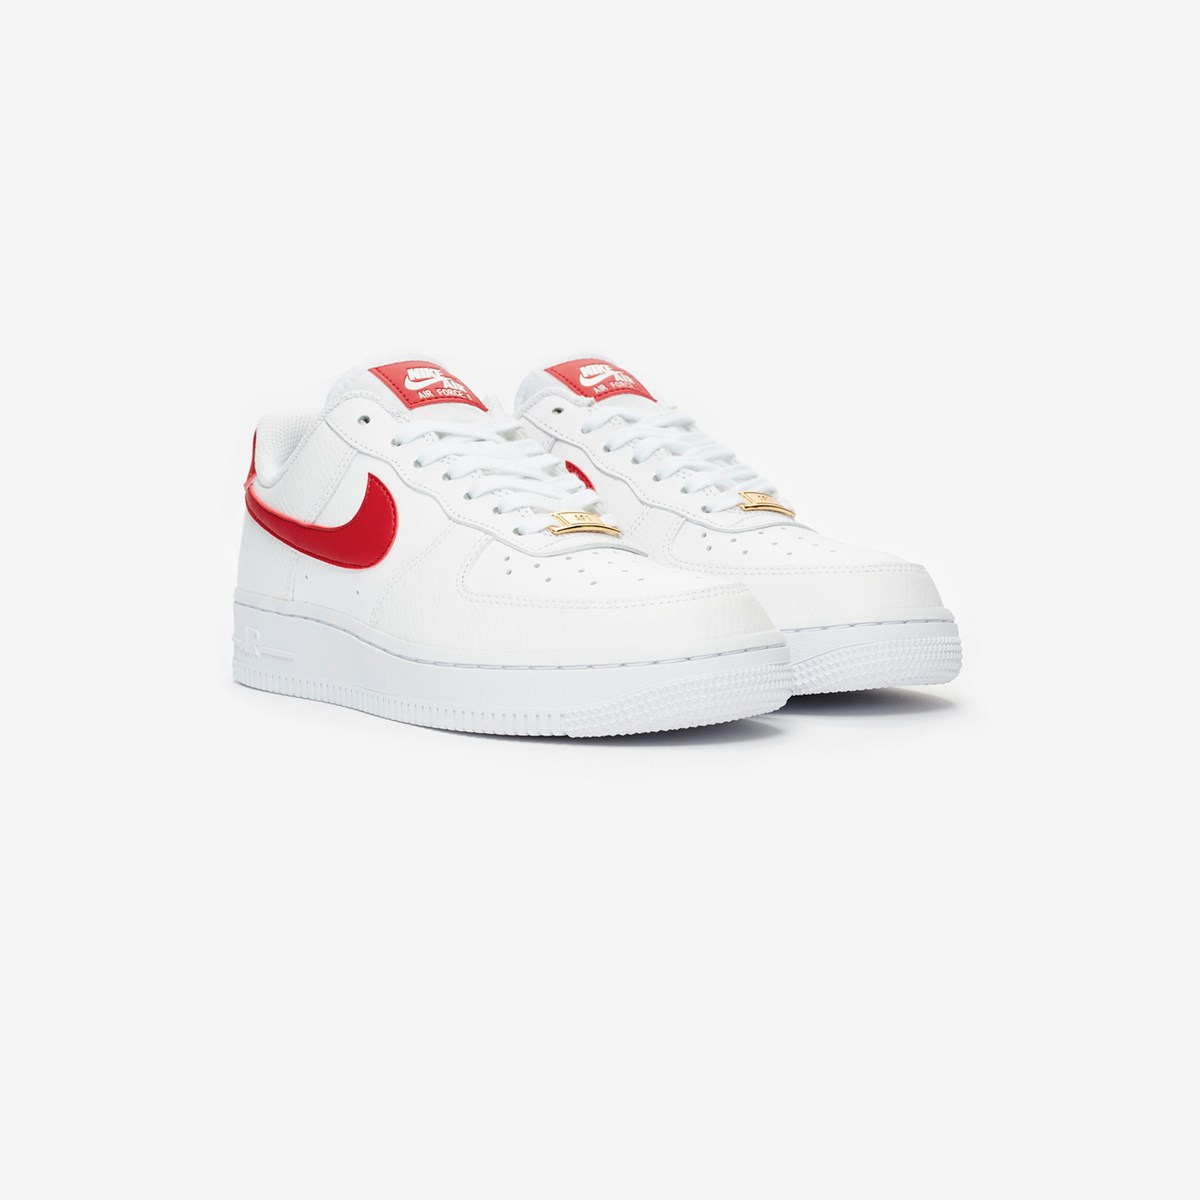 Nike Air Force 1 07 W zu verkaufen Nike Air Force 1 07 W